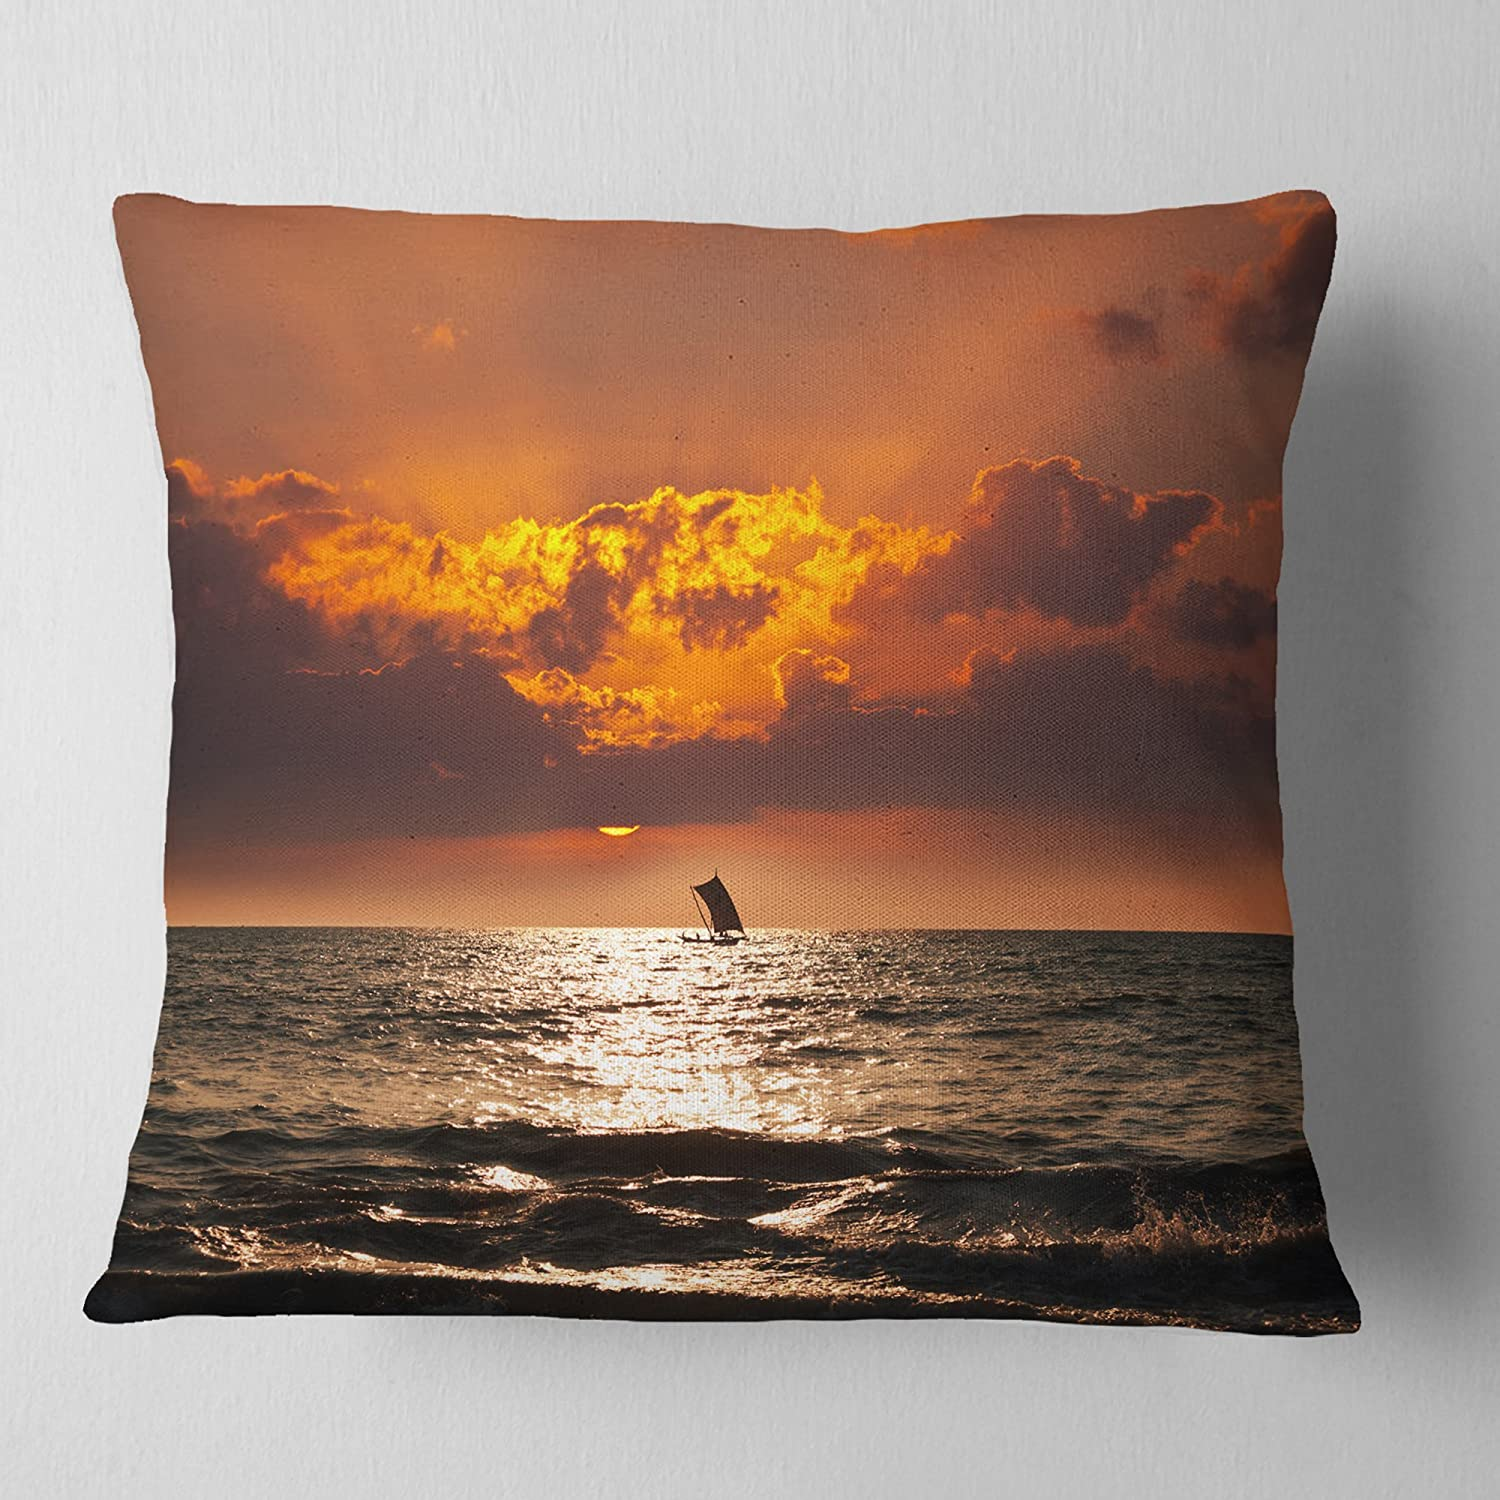 X 26 In Designart Cu12511 26 26 Sunset Beach With Distant Sail Boat Seashore Cushion Cover For Living Room Insert Printed On Both Side In Sofa Throw Pillow 26 In Throw Pillow Covers Decorative